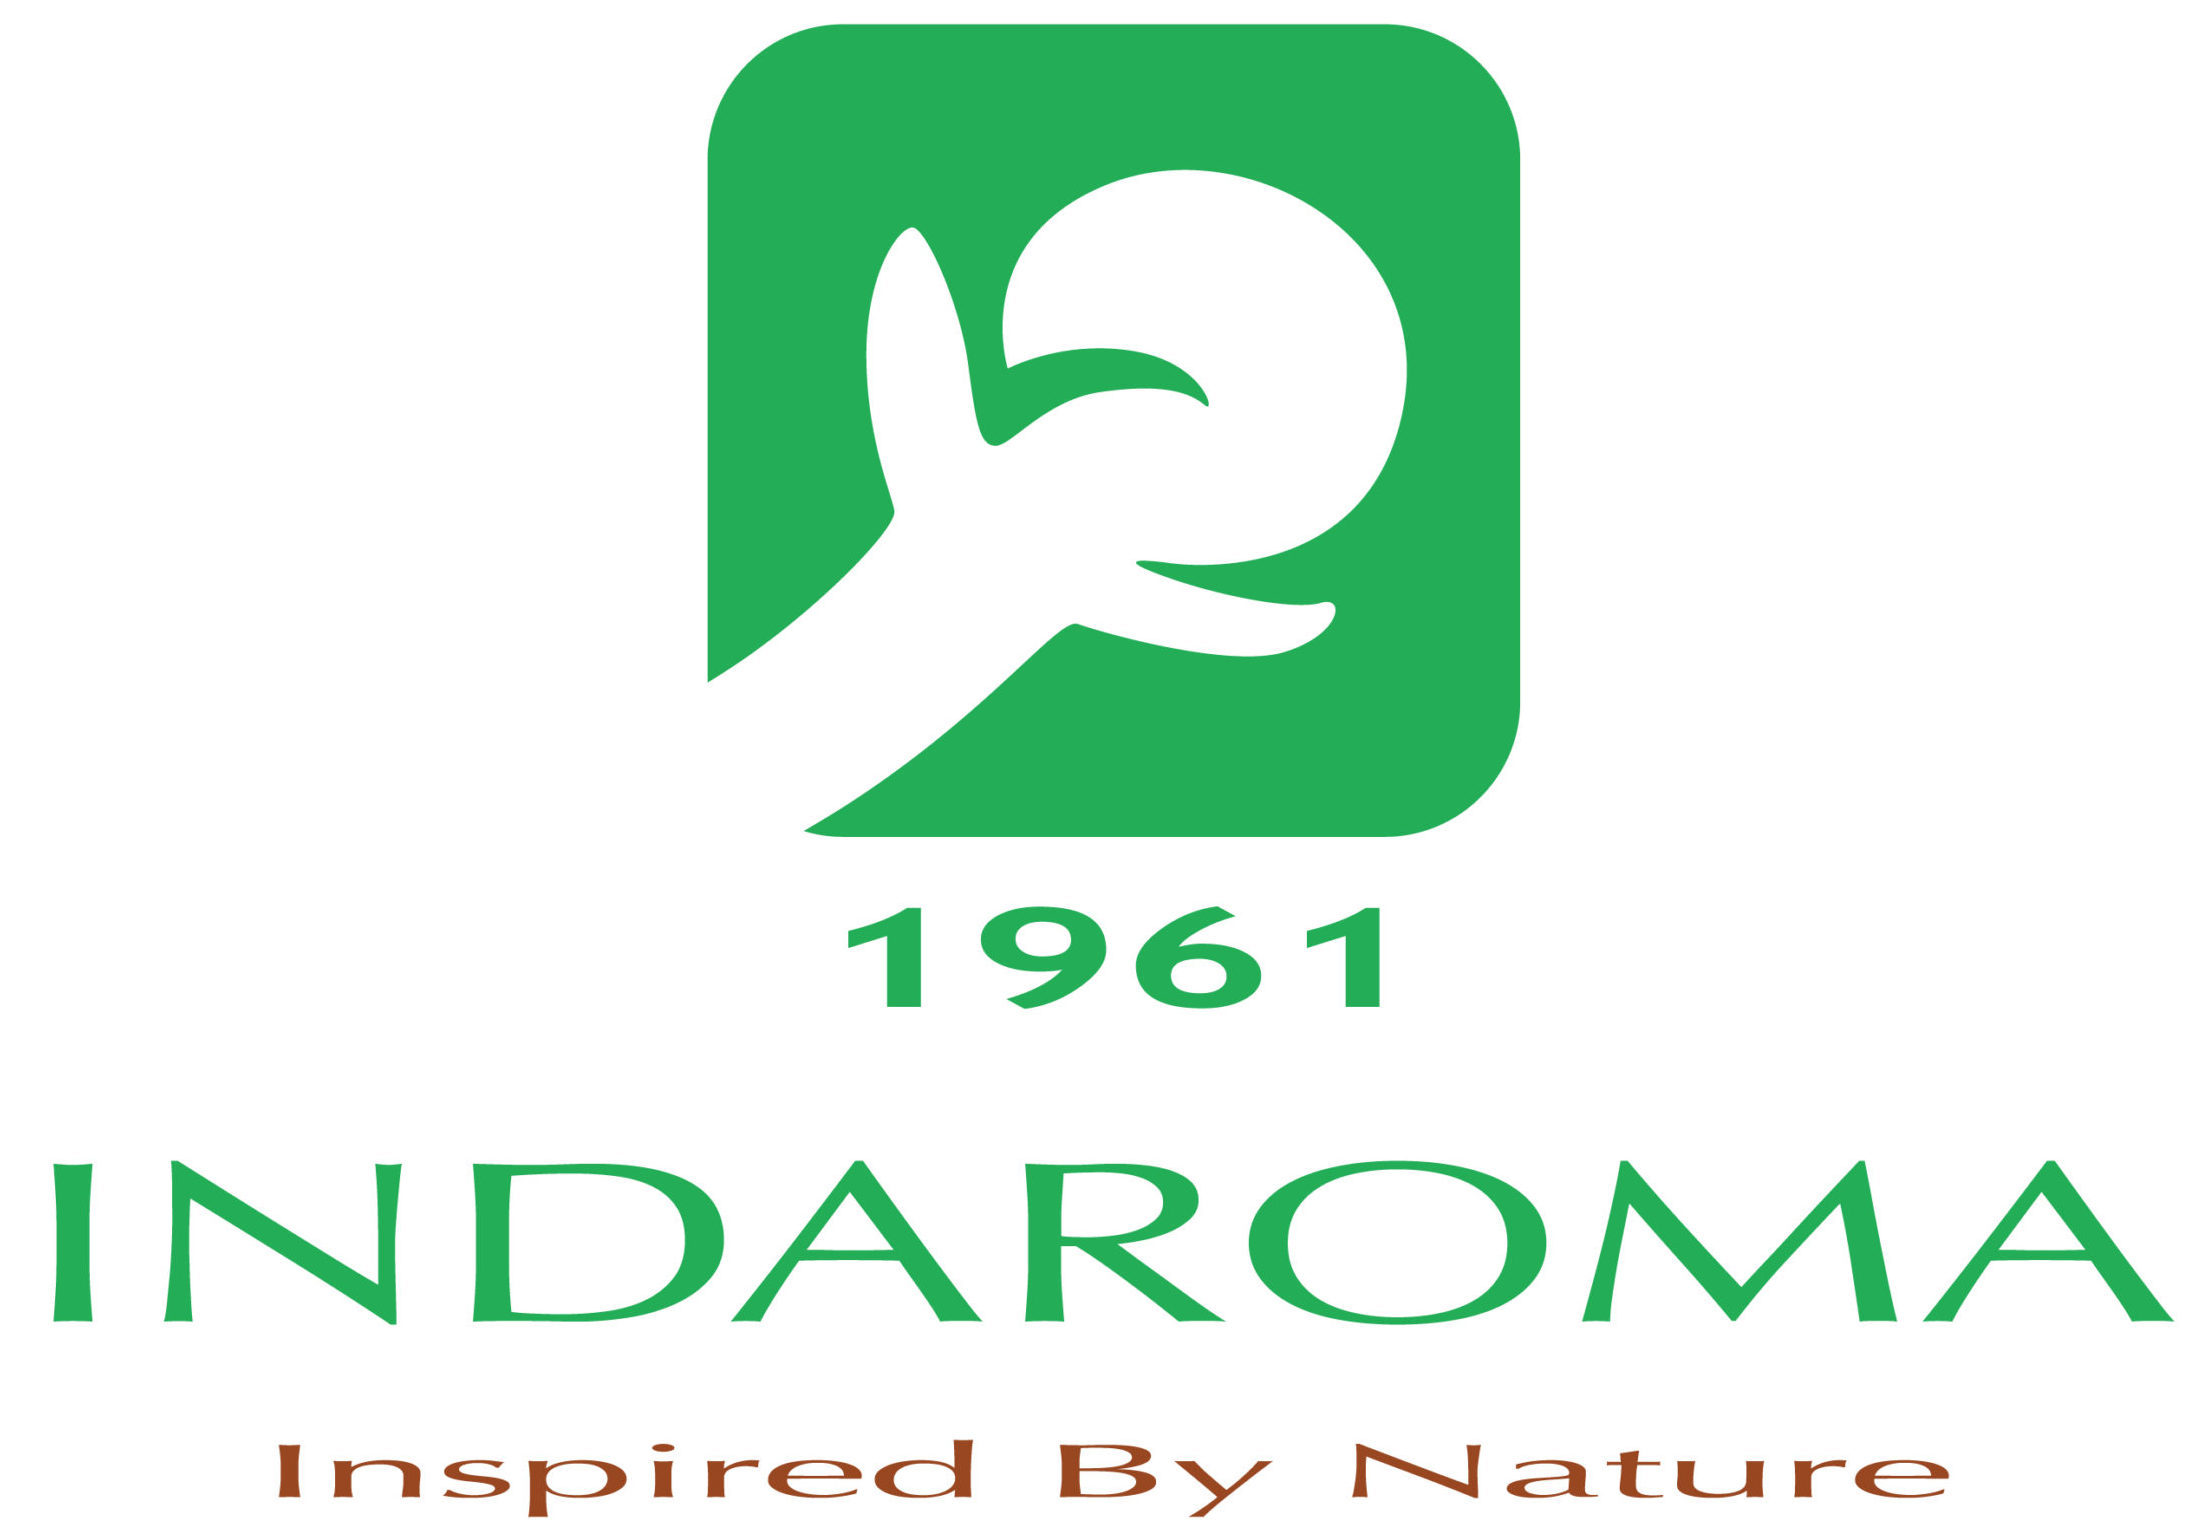 Indaroma ~ Inspired by Nature